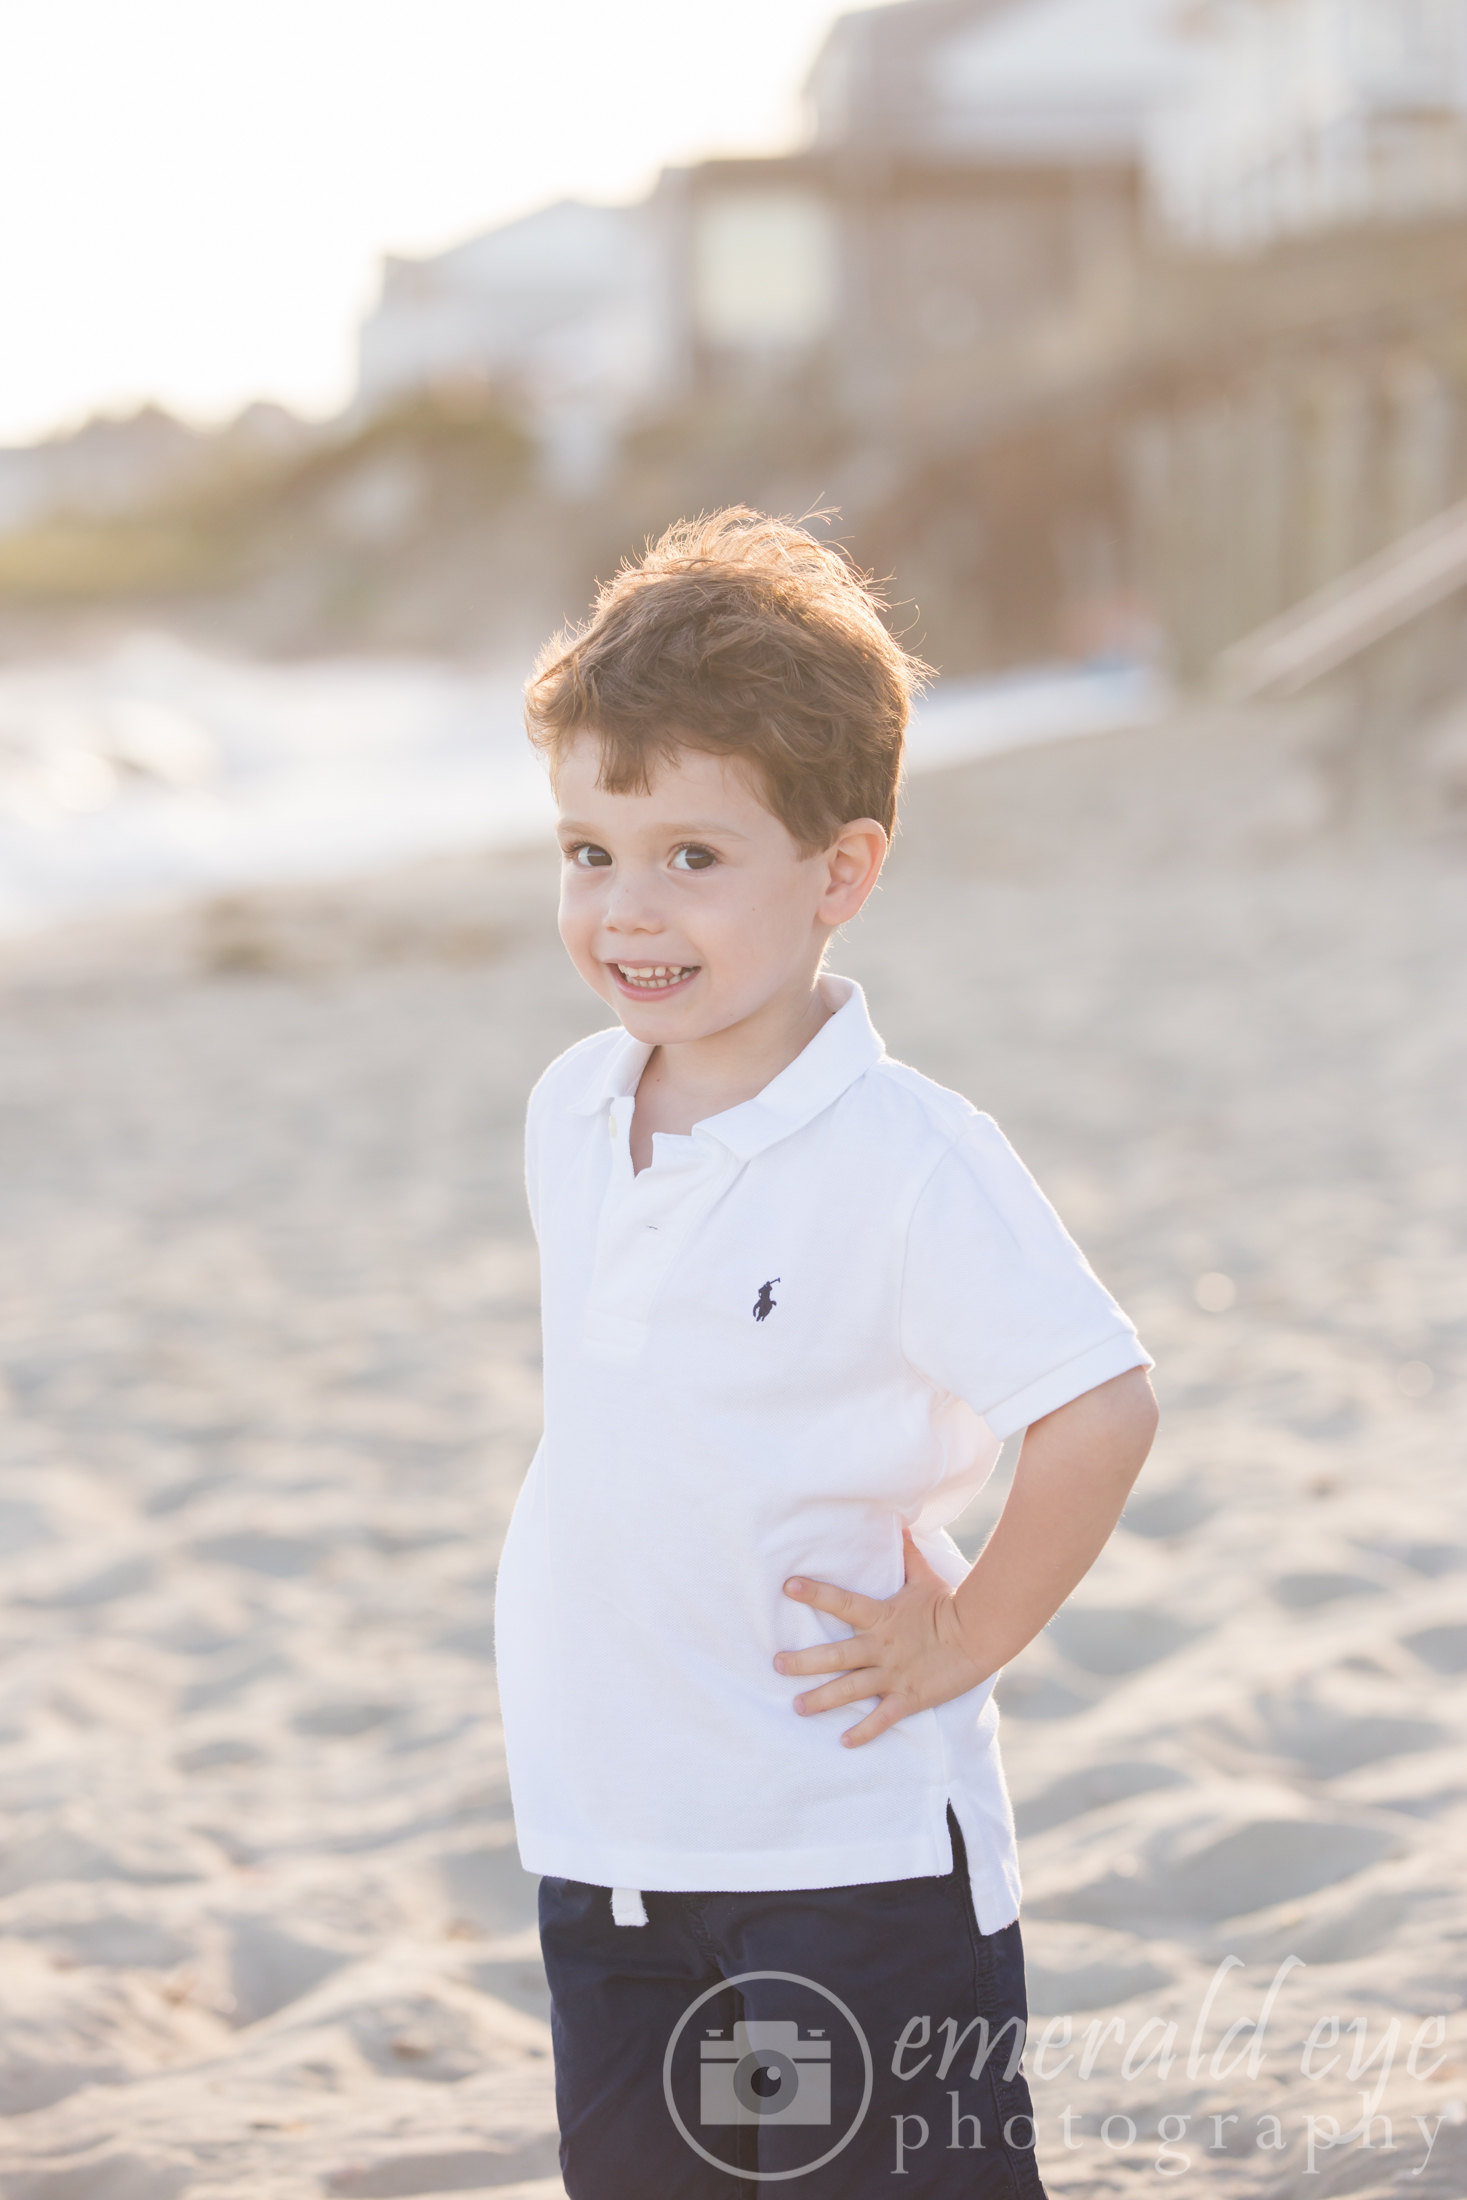 Toddler stands on a Cape Cod beach - Family photos in Massachusetts